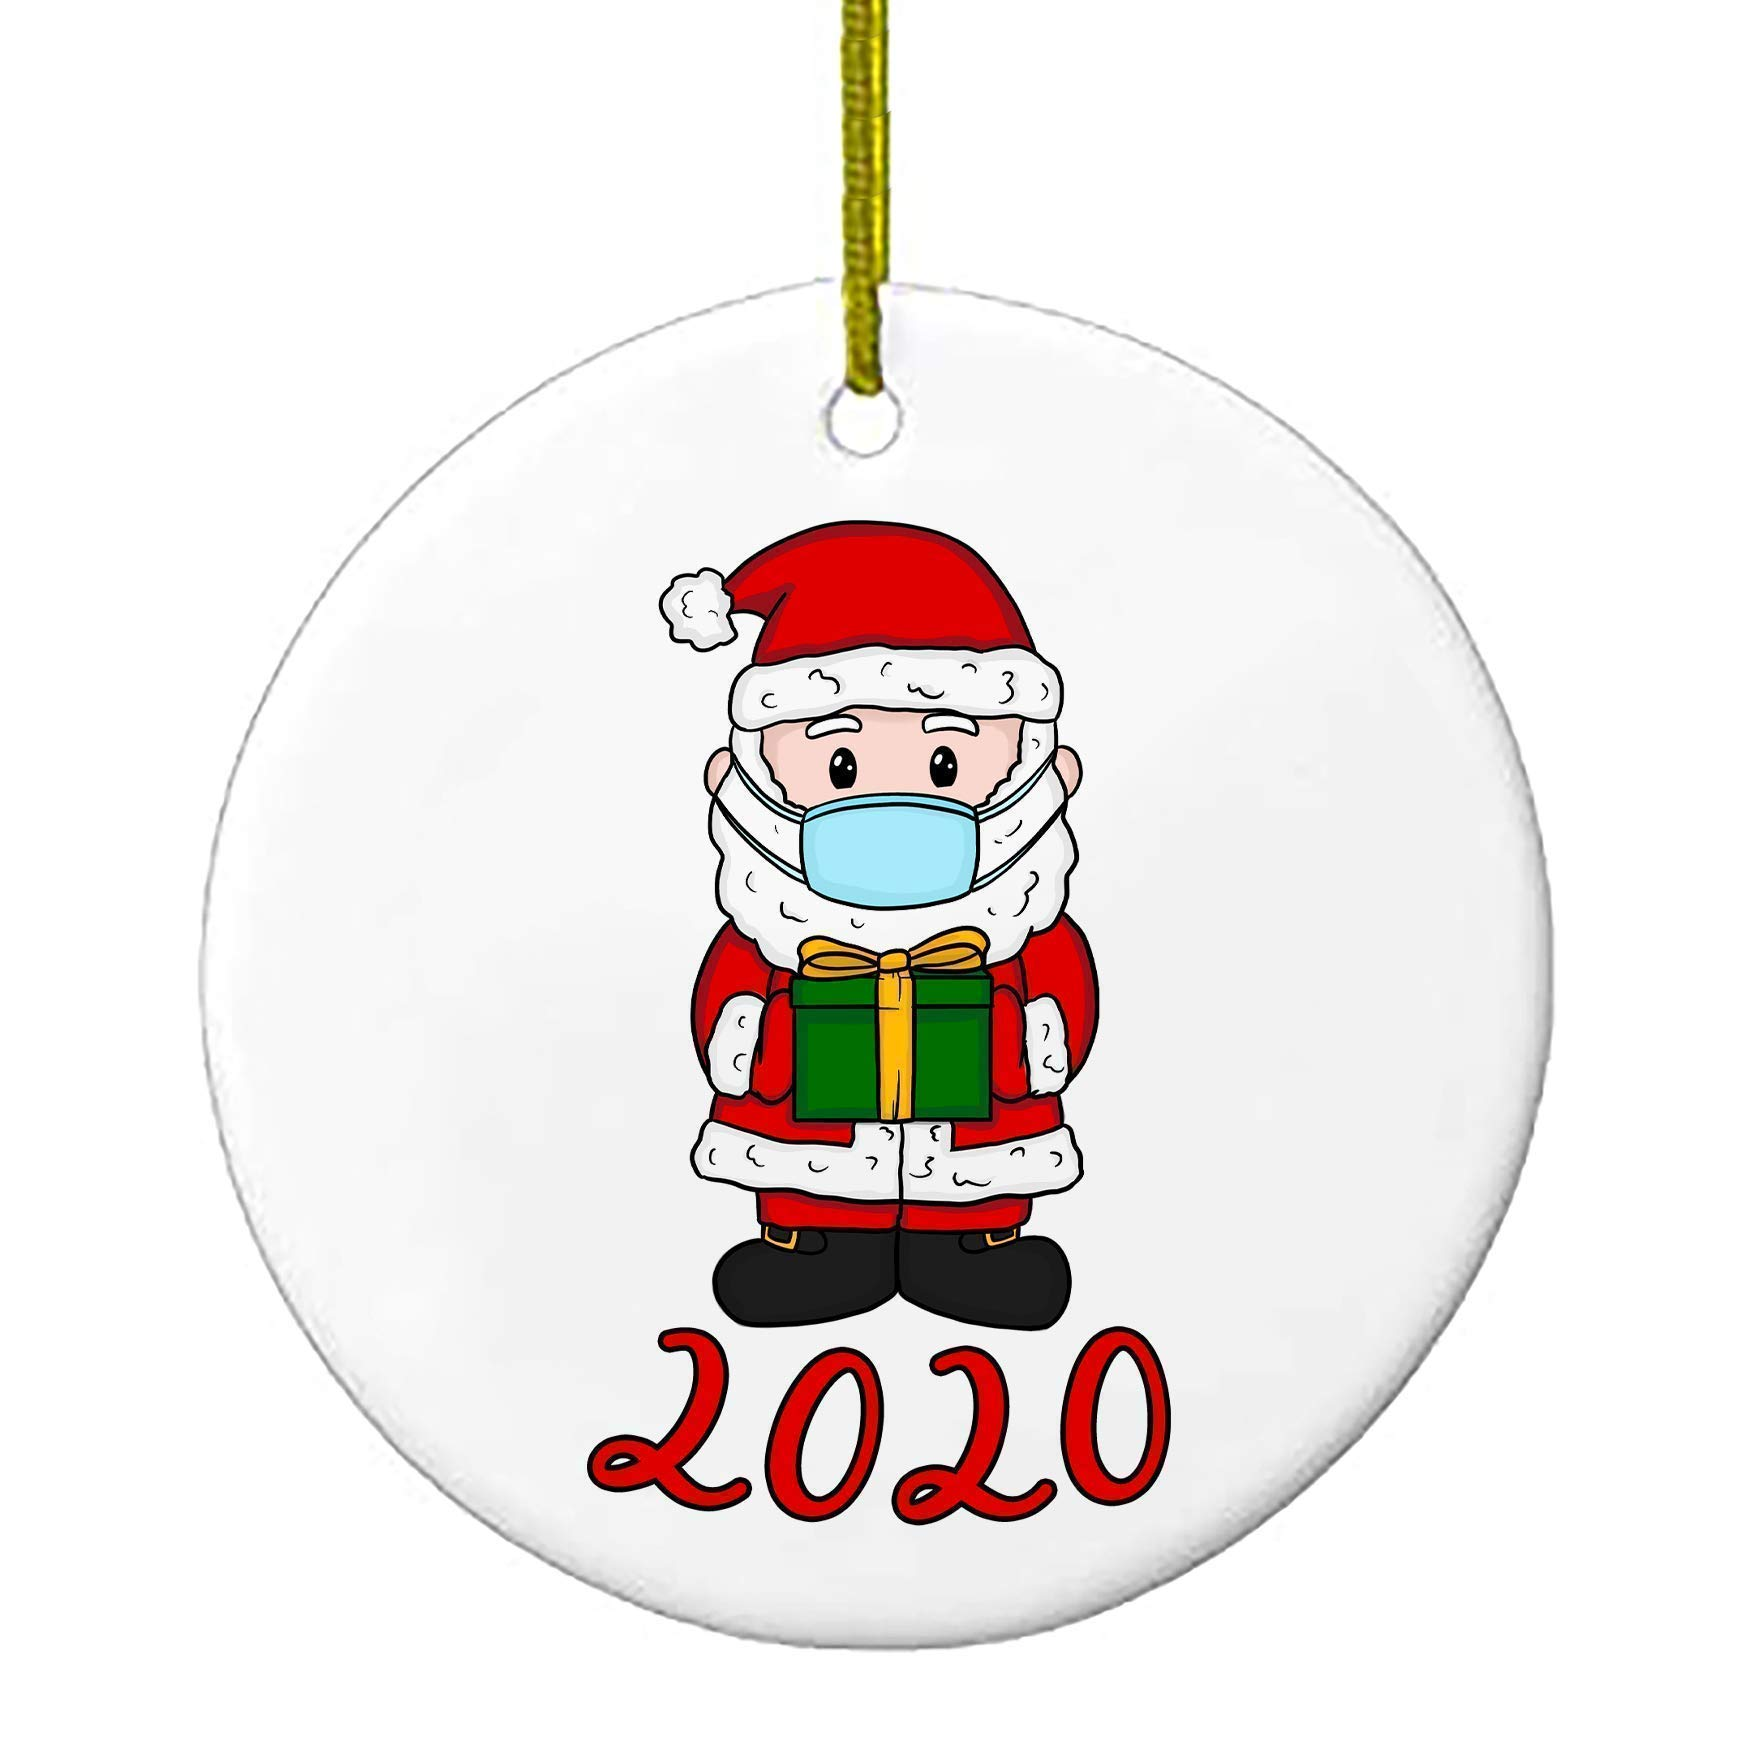 2020 Christmas Ornaments Cute Santa Clause Wearing Mask With Gift Personalized Gifts